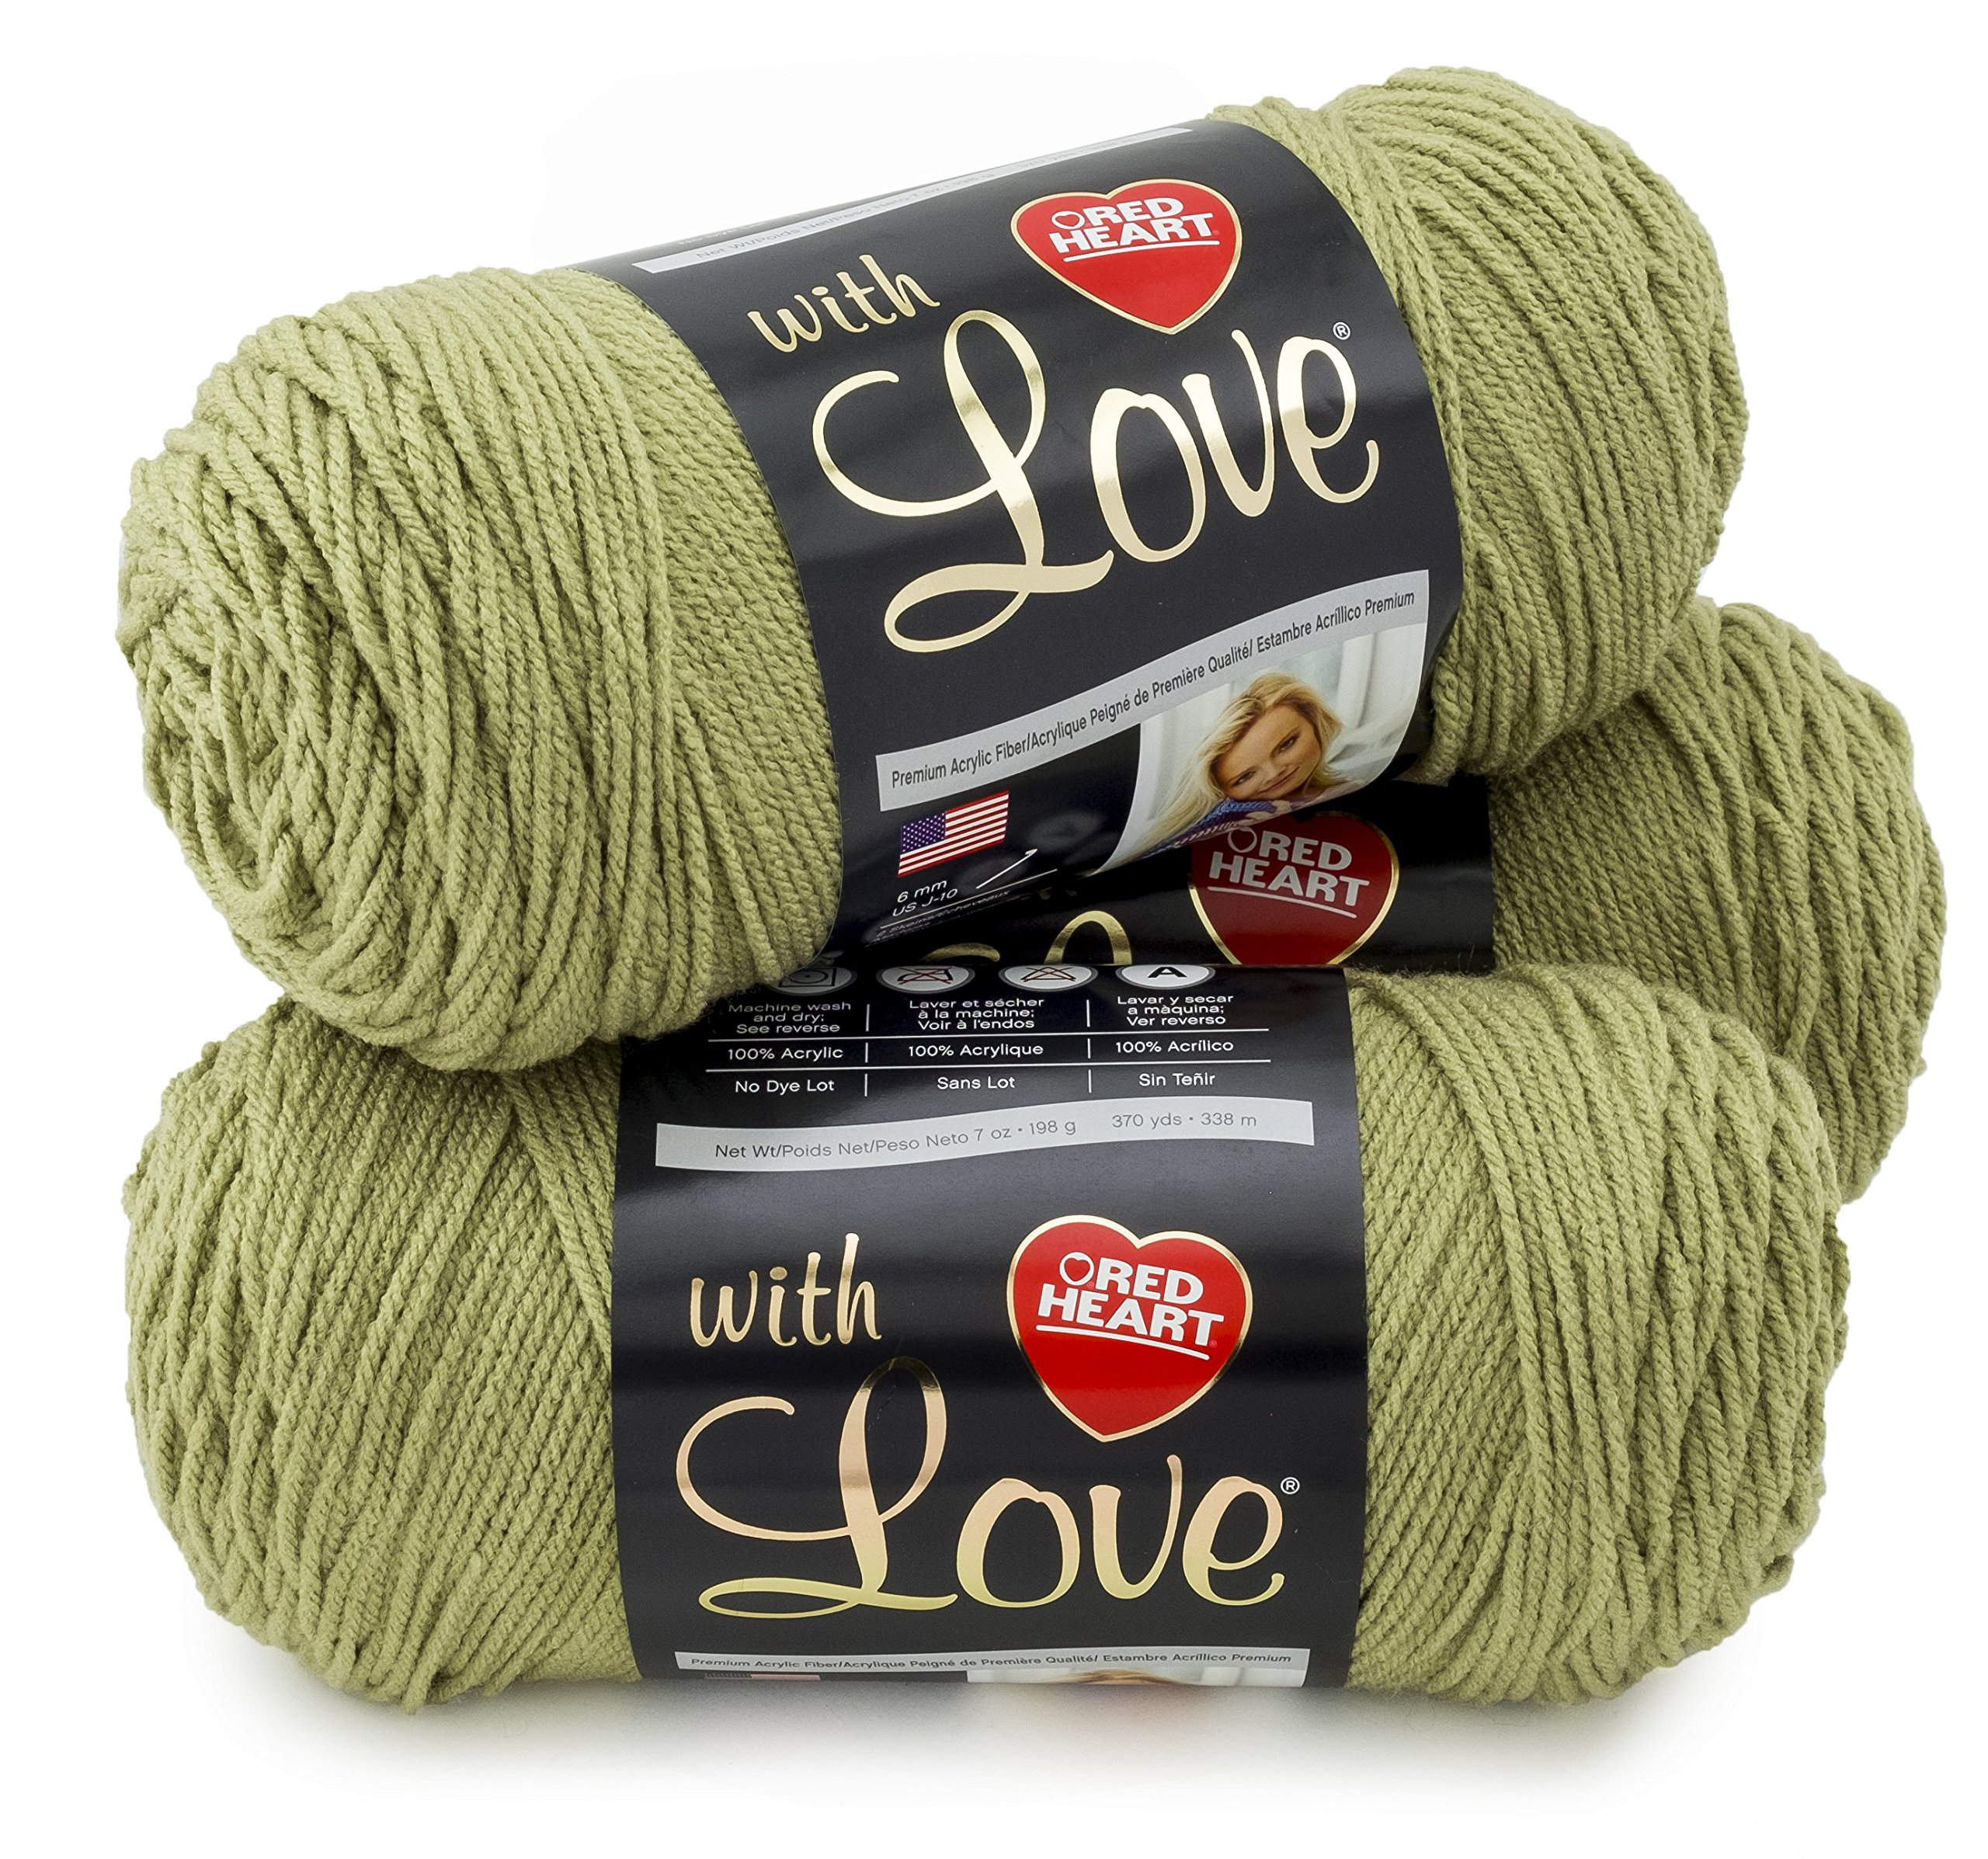 Red Heart E400PK.1601 With With Love 3 Pack, Lettuce